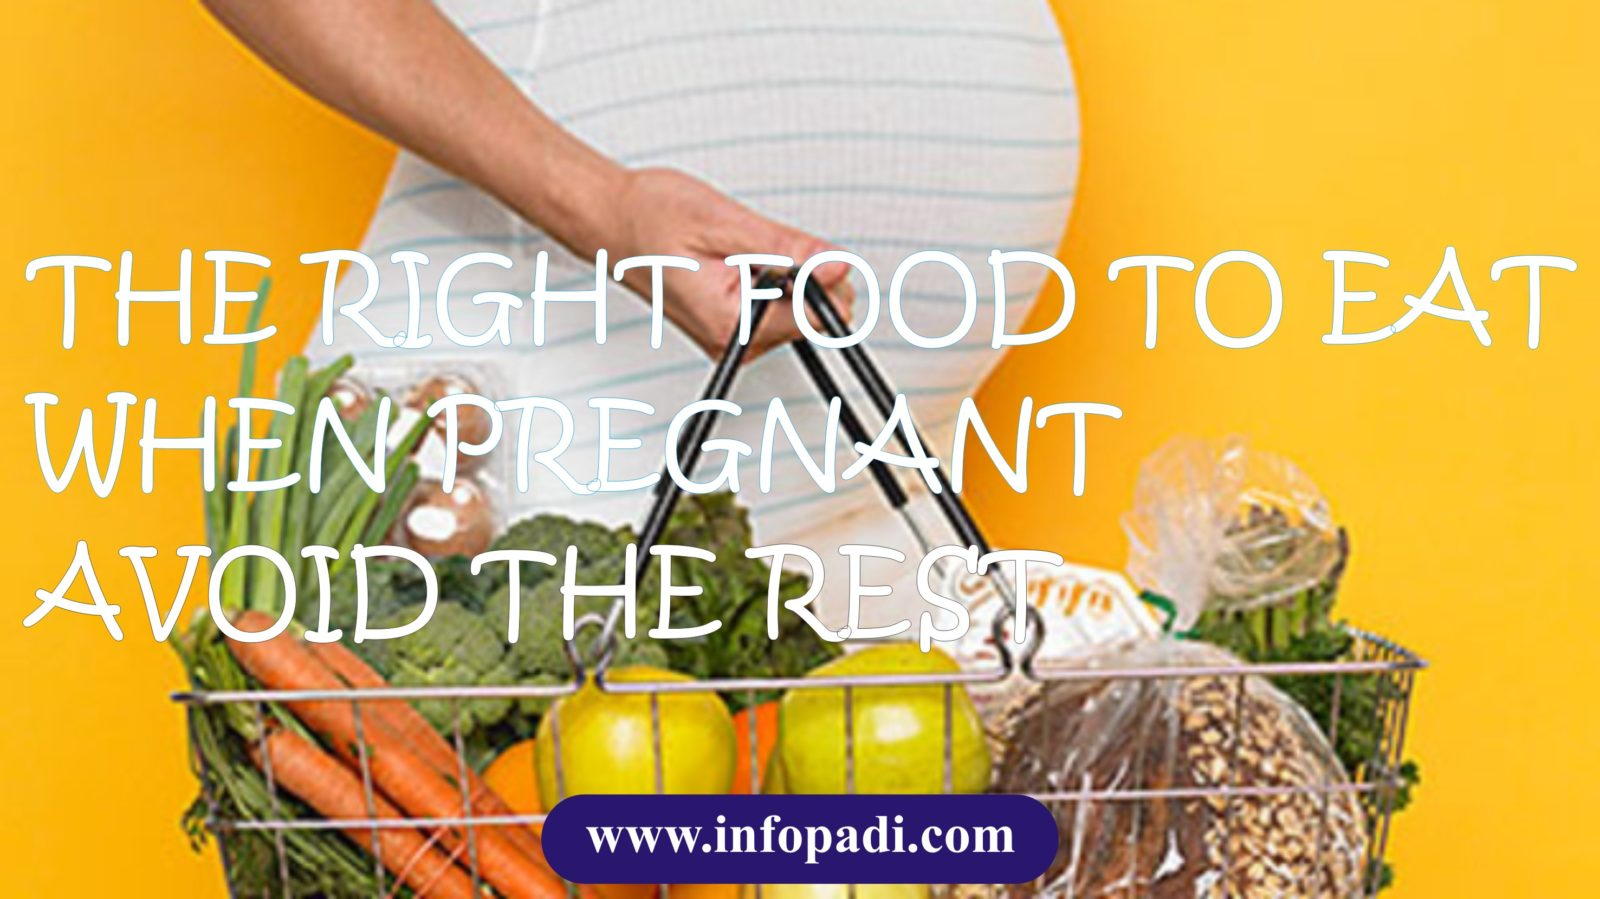 FOOD YOU MUST AVOID DURING PREGNANCY- Health Tips for Pregnant Women